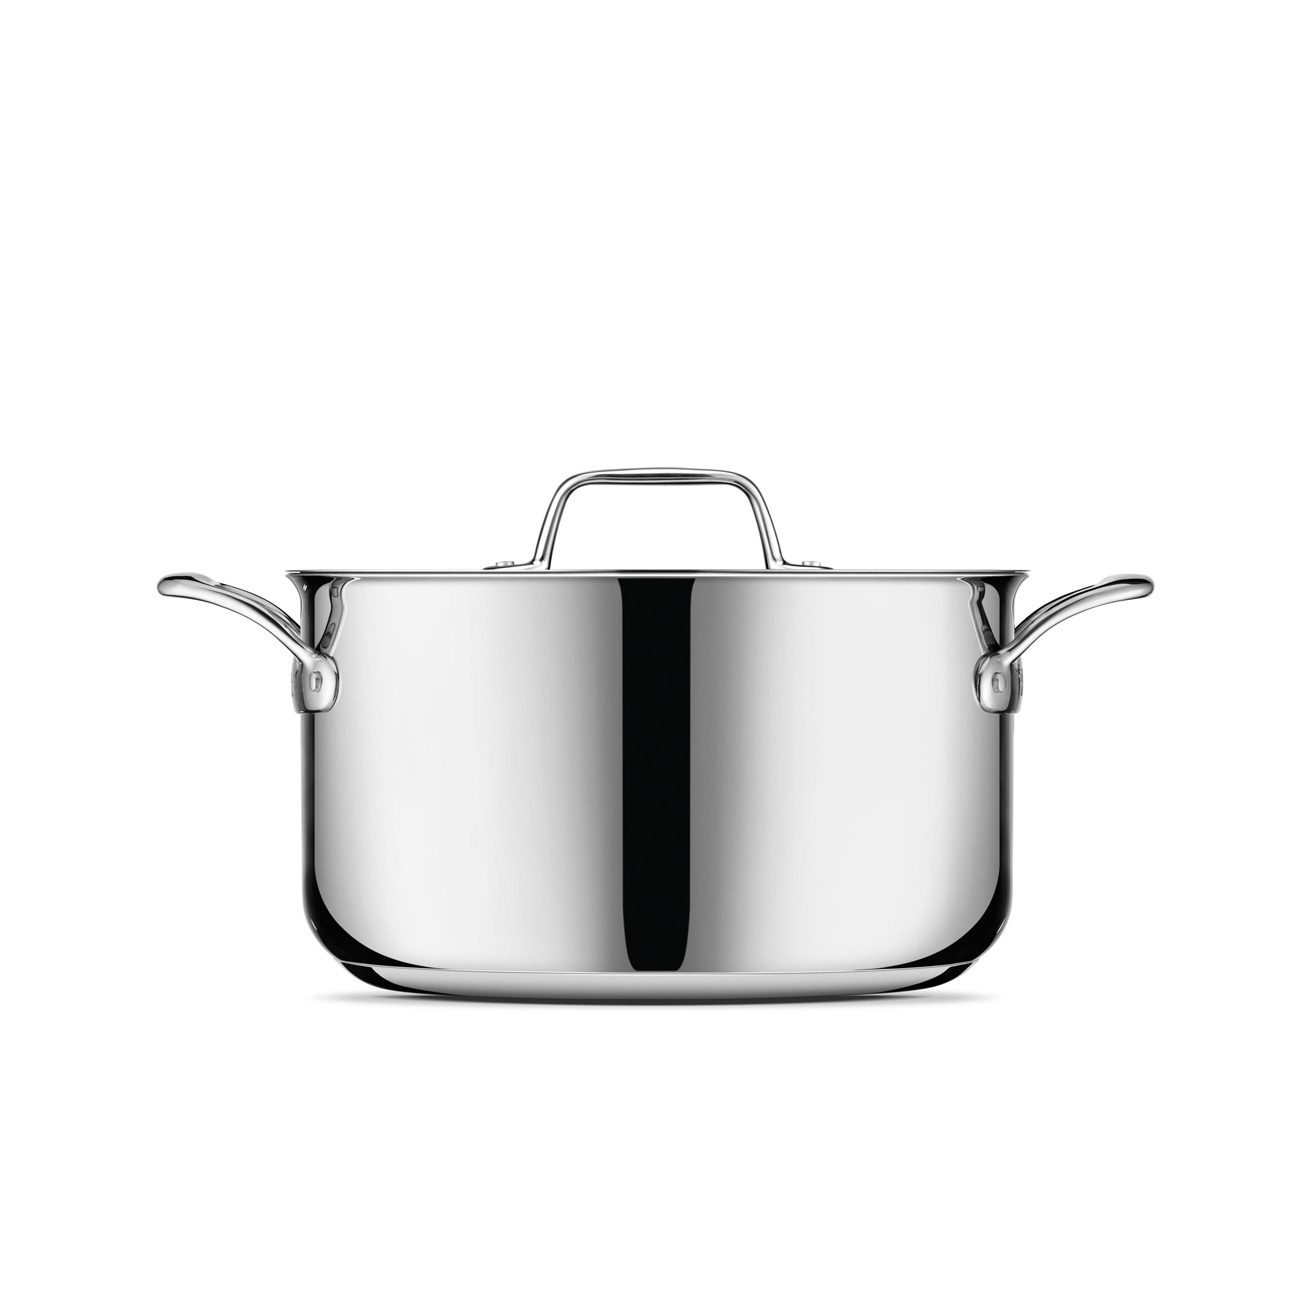 Thermal Pro™ Clad Stainless Steel 8qt Stockpot